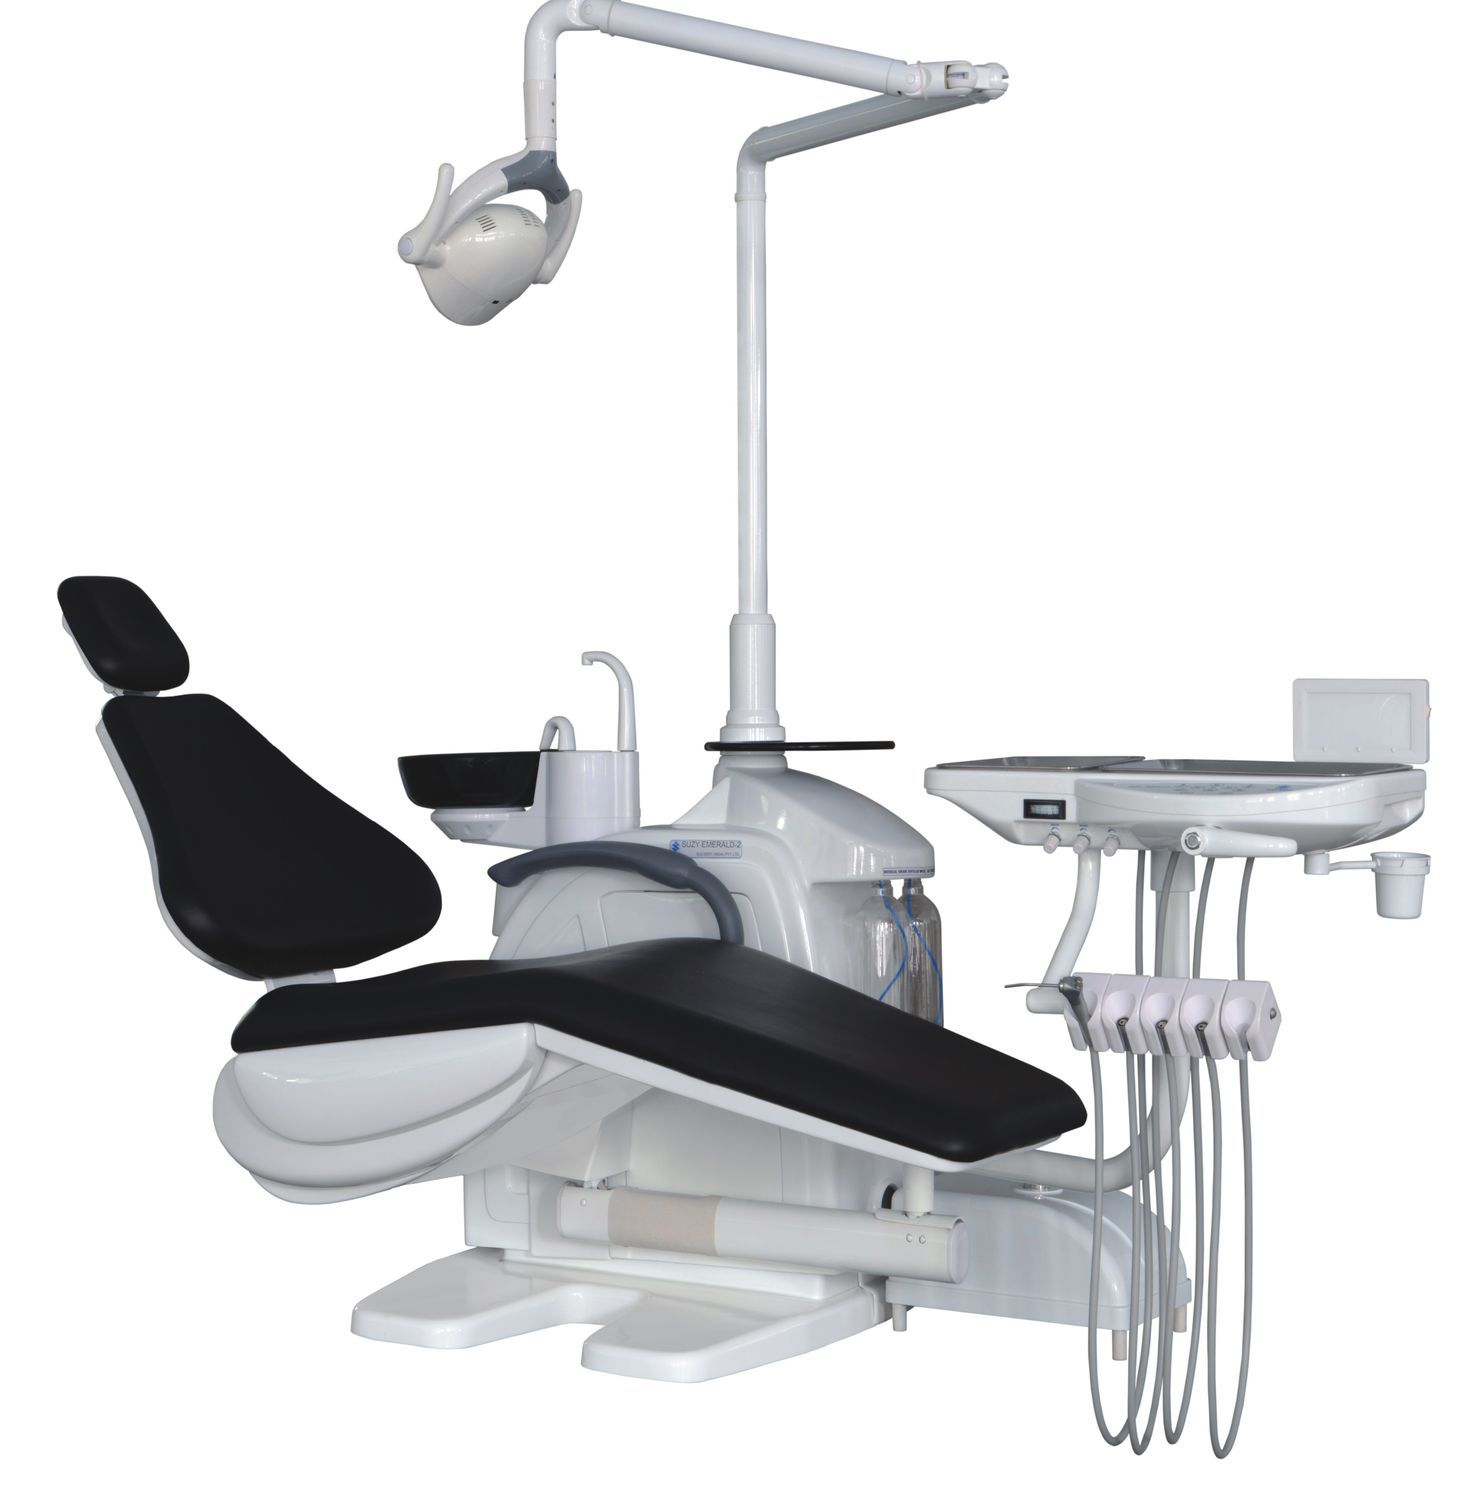 Dental unit with motor driven chair with delivery system Suzy